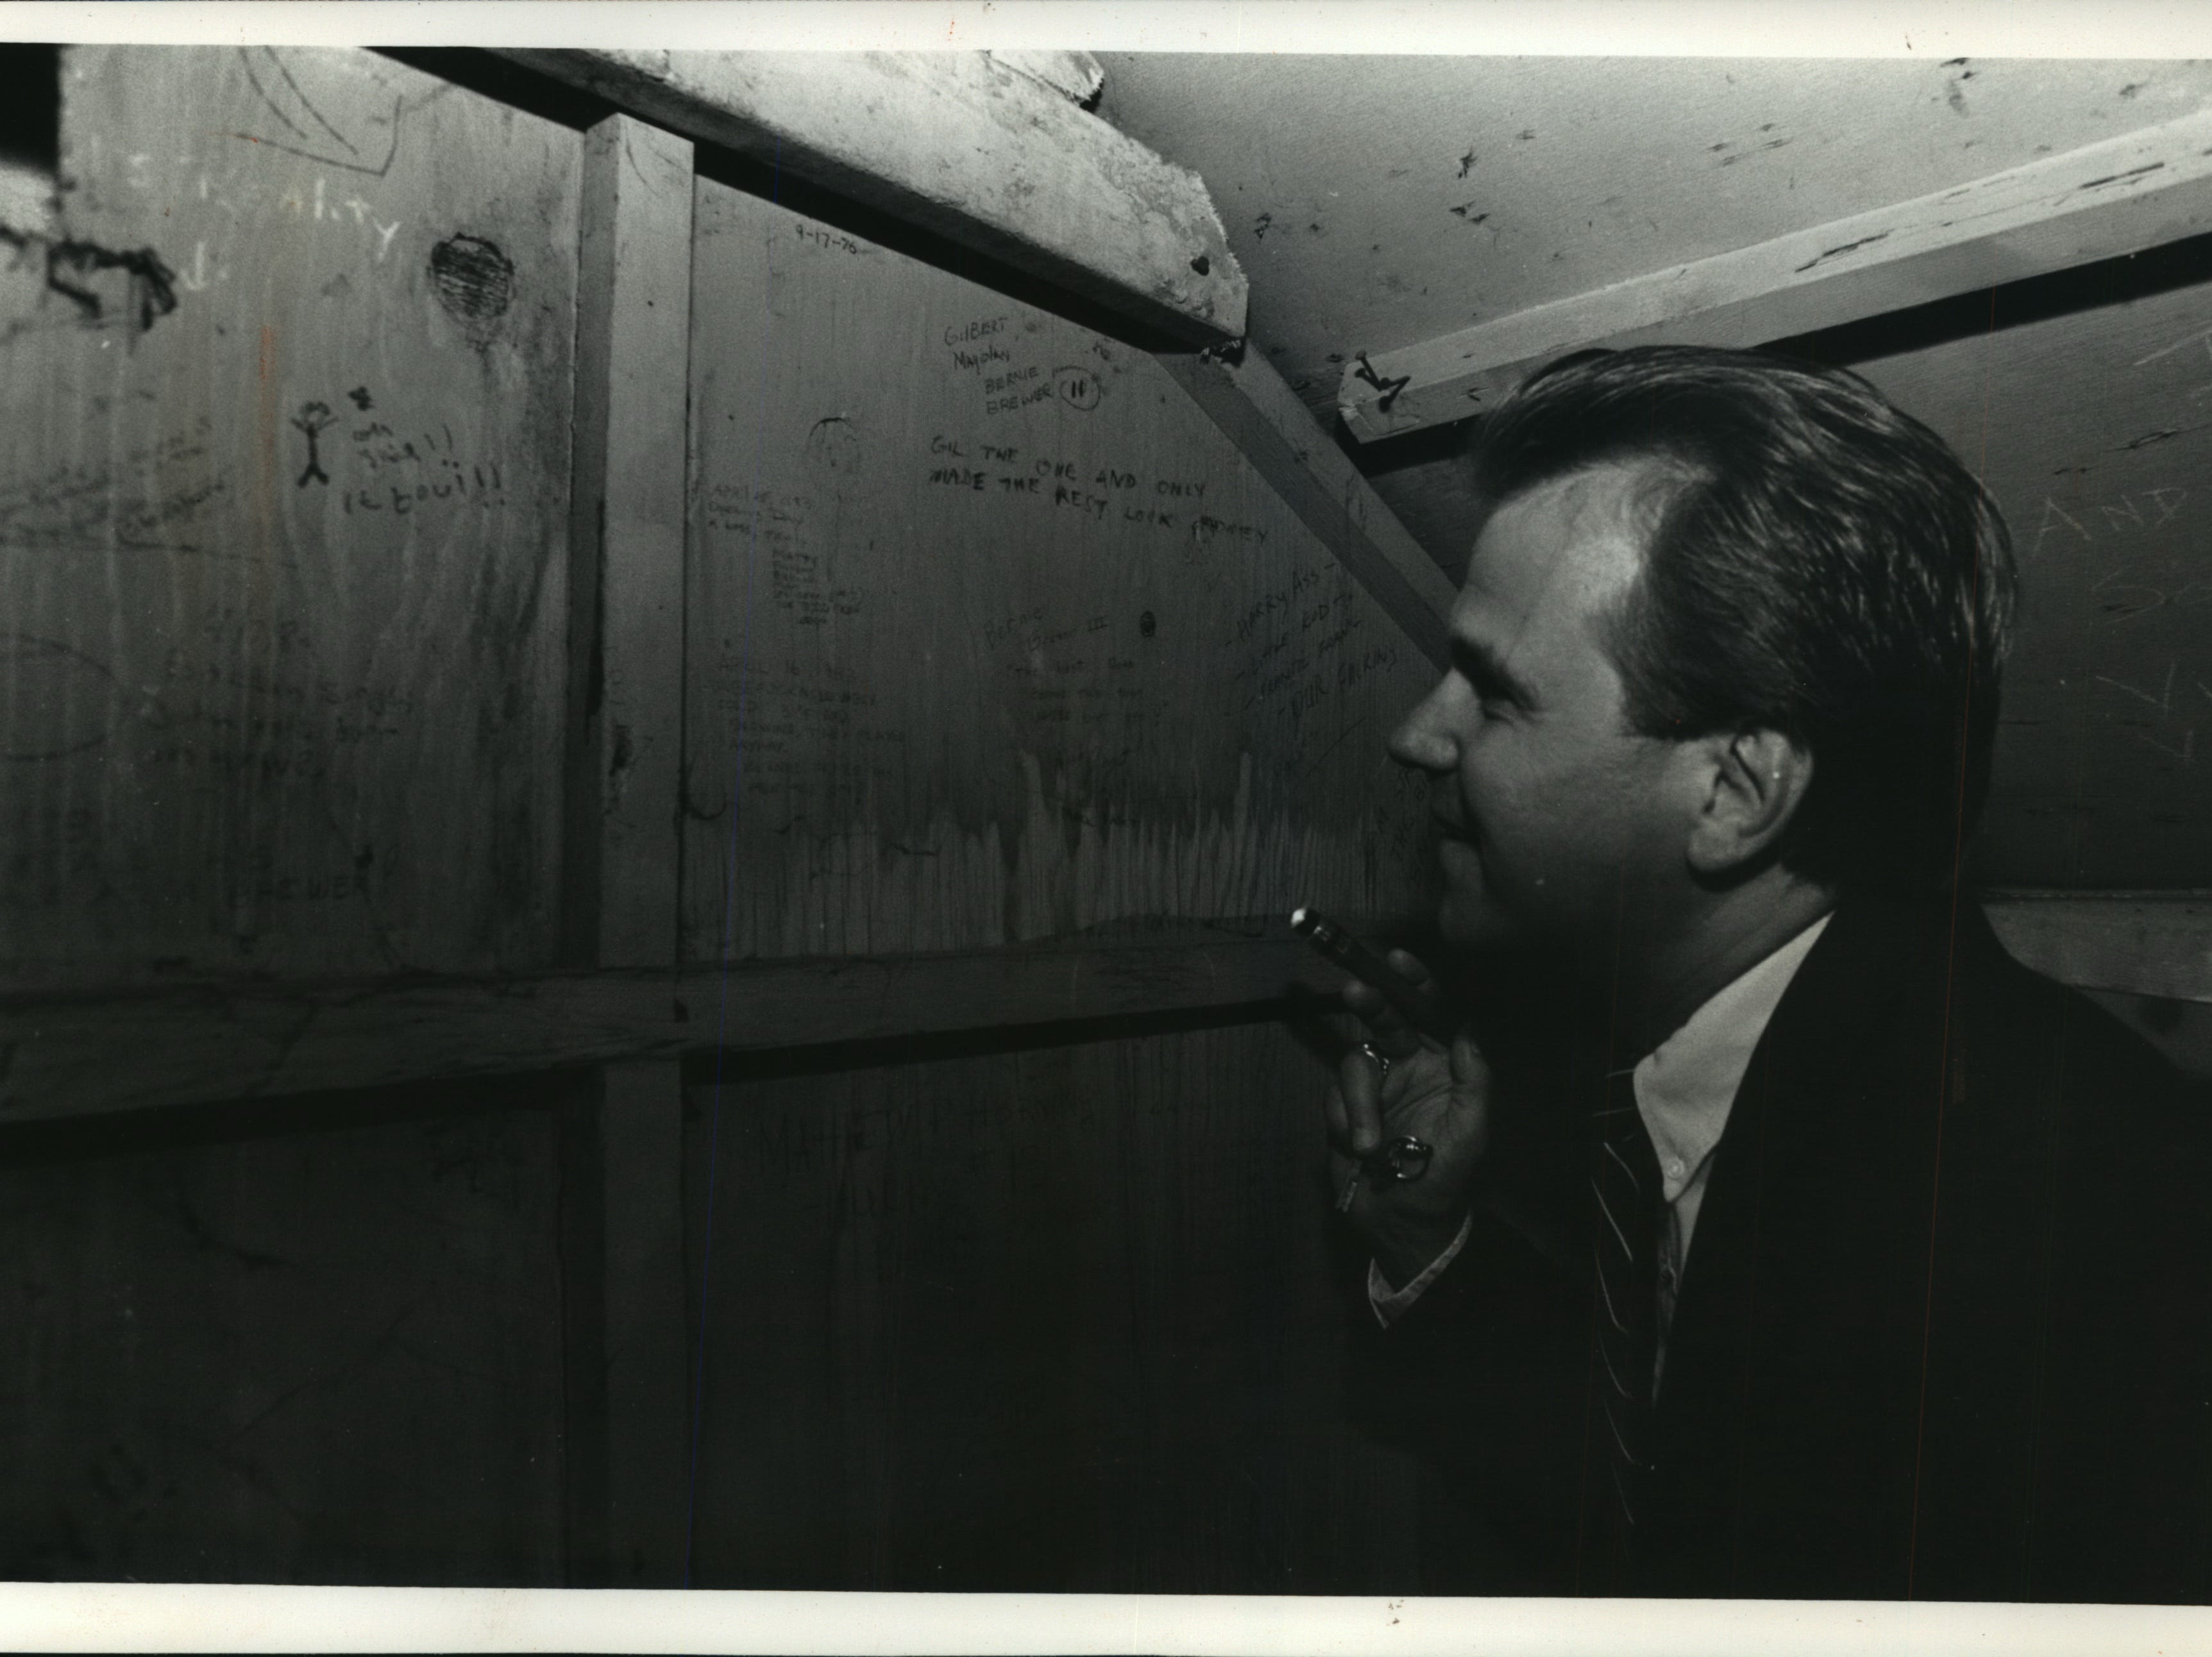 Mark Paget, a member of the County Stadium grounds crew who was Bernie Brewer from 1974 to '76, reads graffiti he wrote on the walls of the old chalet, where he cheered on the home team above a giant beer keg and mug. This photo was published in the July 8, 1992, Milwaukee Journal.